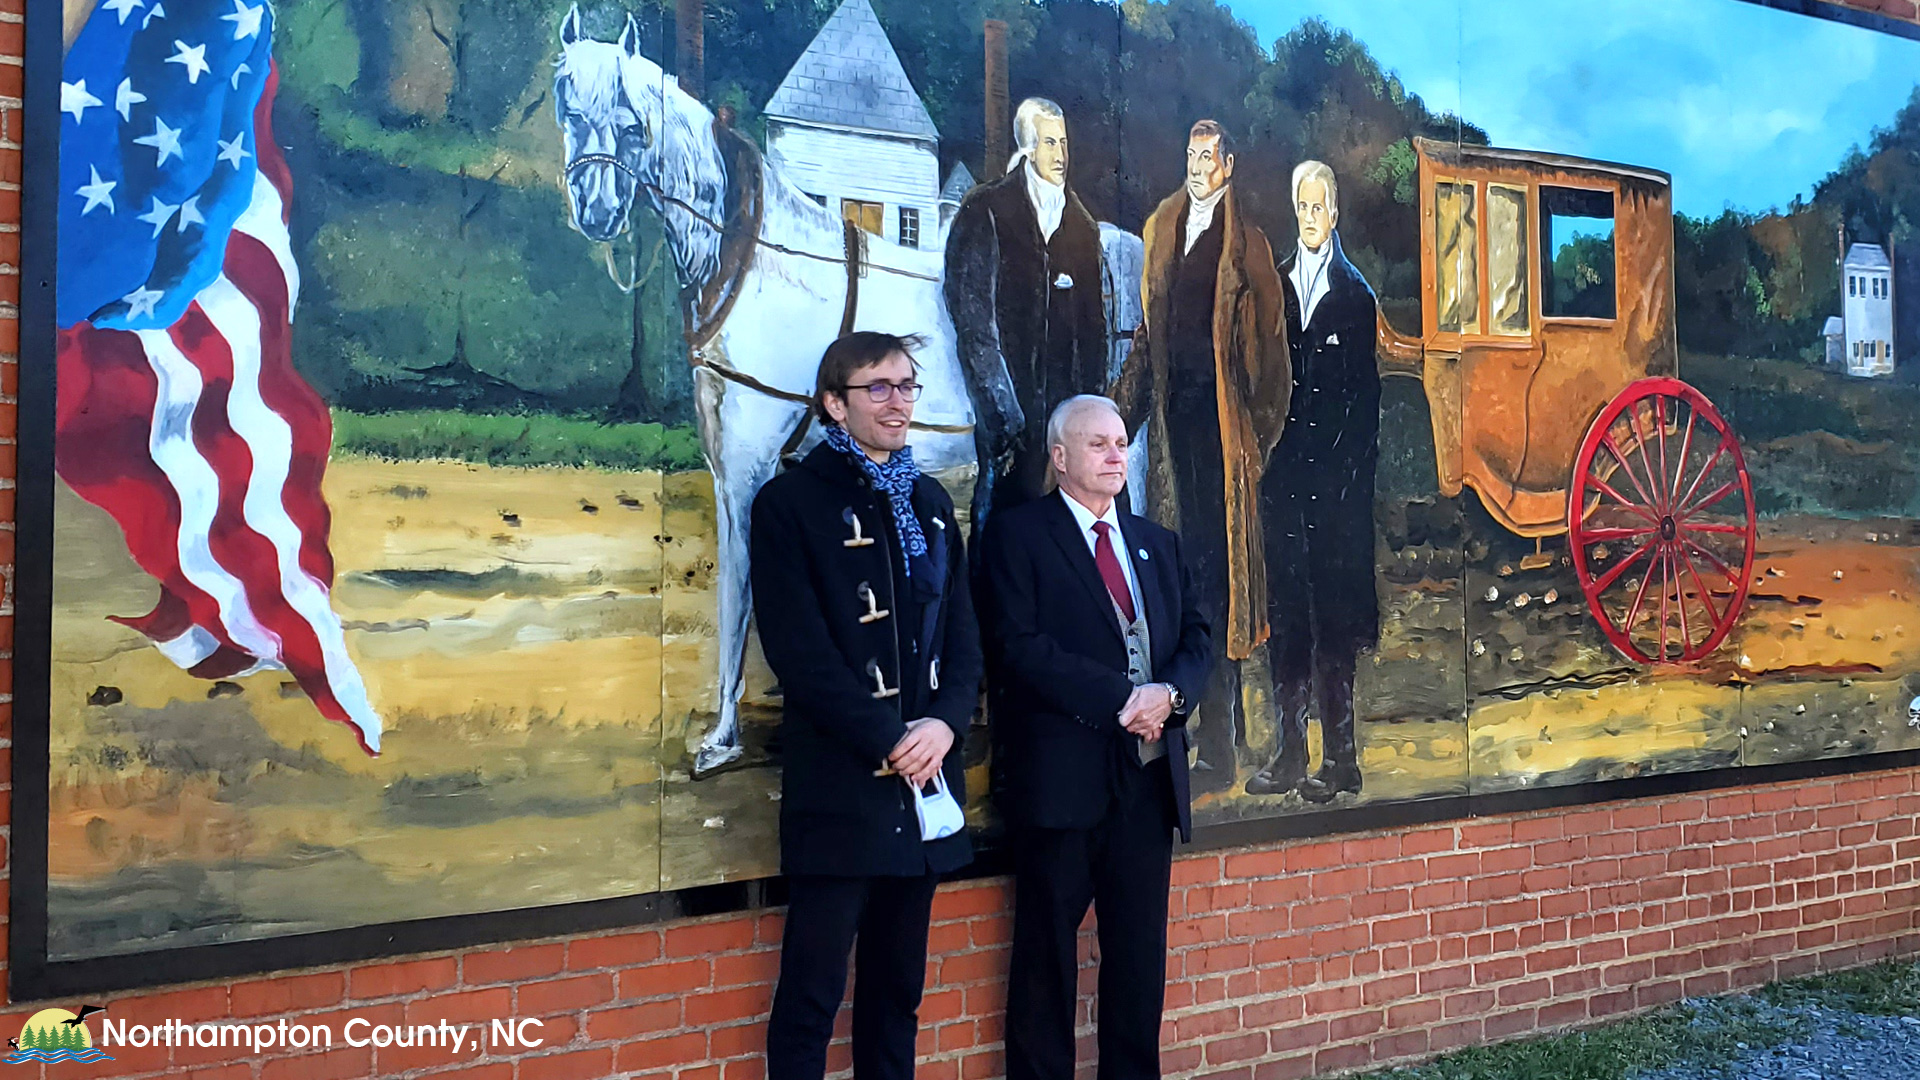 Mural commemorating Lafayette's visit on the west wall of the Embassy Cafe in Jackson NC